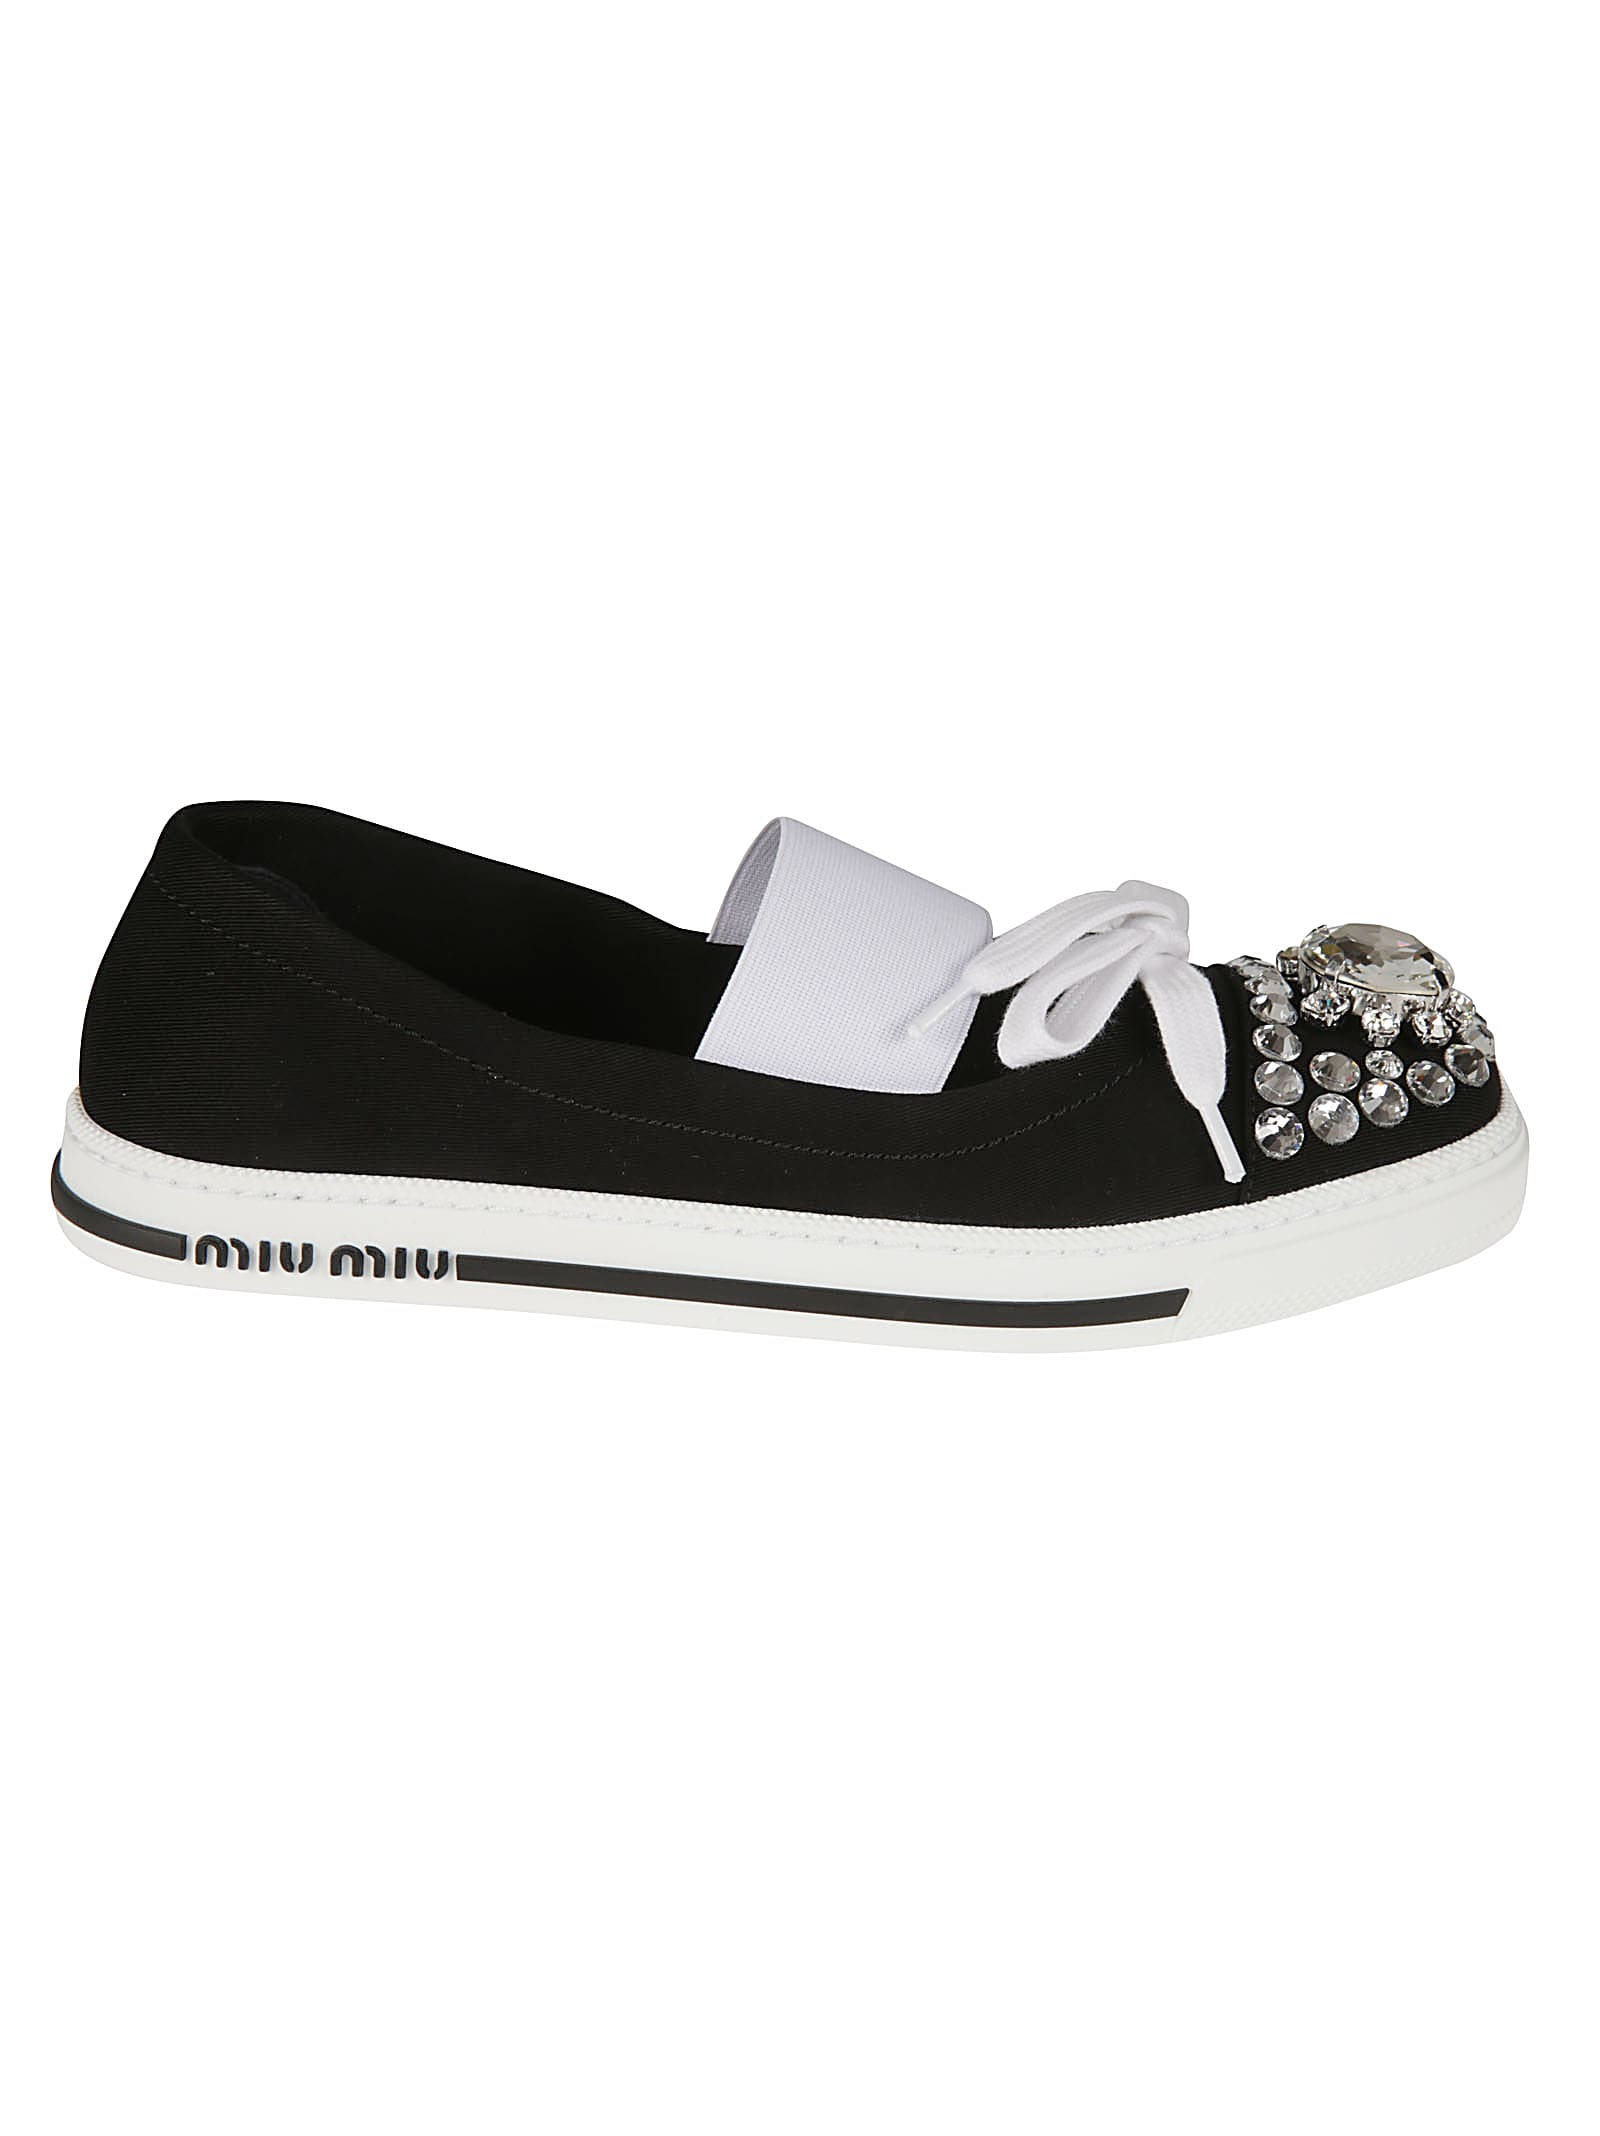 Buy Miu Miu Garbadine 1 Ankle Elastic Strap Embellished Slip-on Sneakers online, shop Miu Miu shoes with free shipping